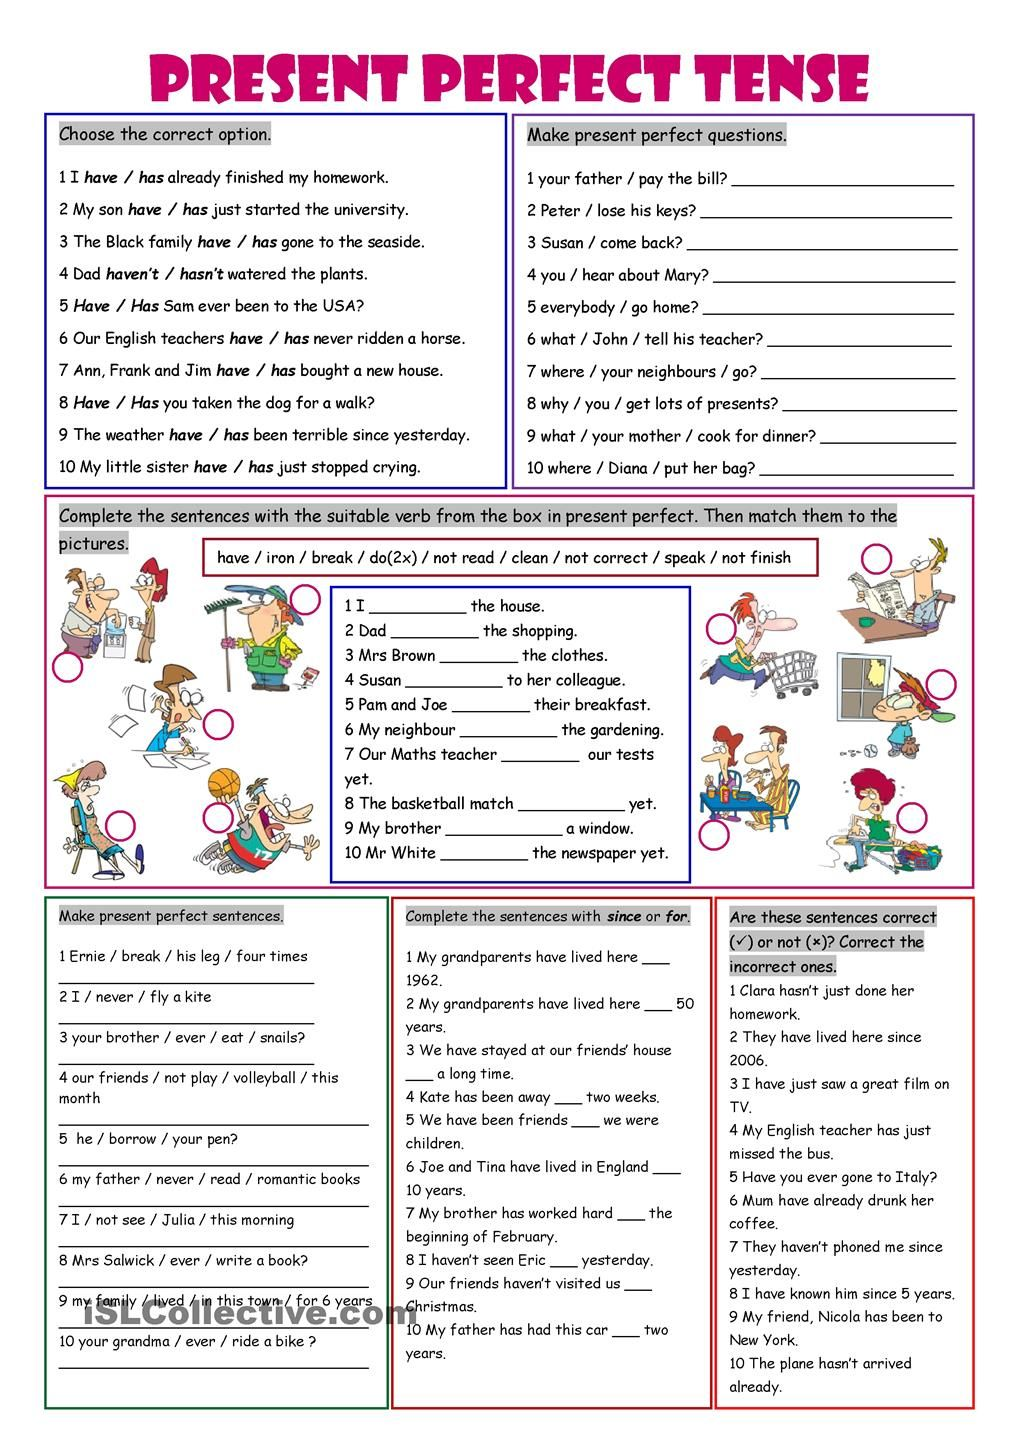 Workbooks past and present tense worksheets : Present Perfect #EnglishTenses #LearnEnglish #EnglishGrammar ...